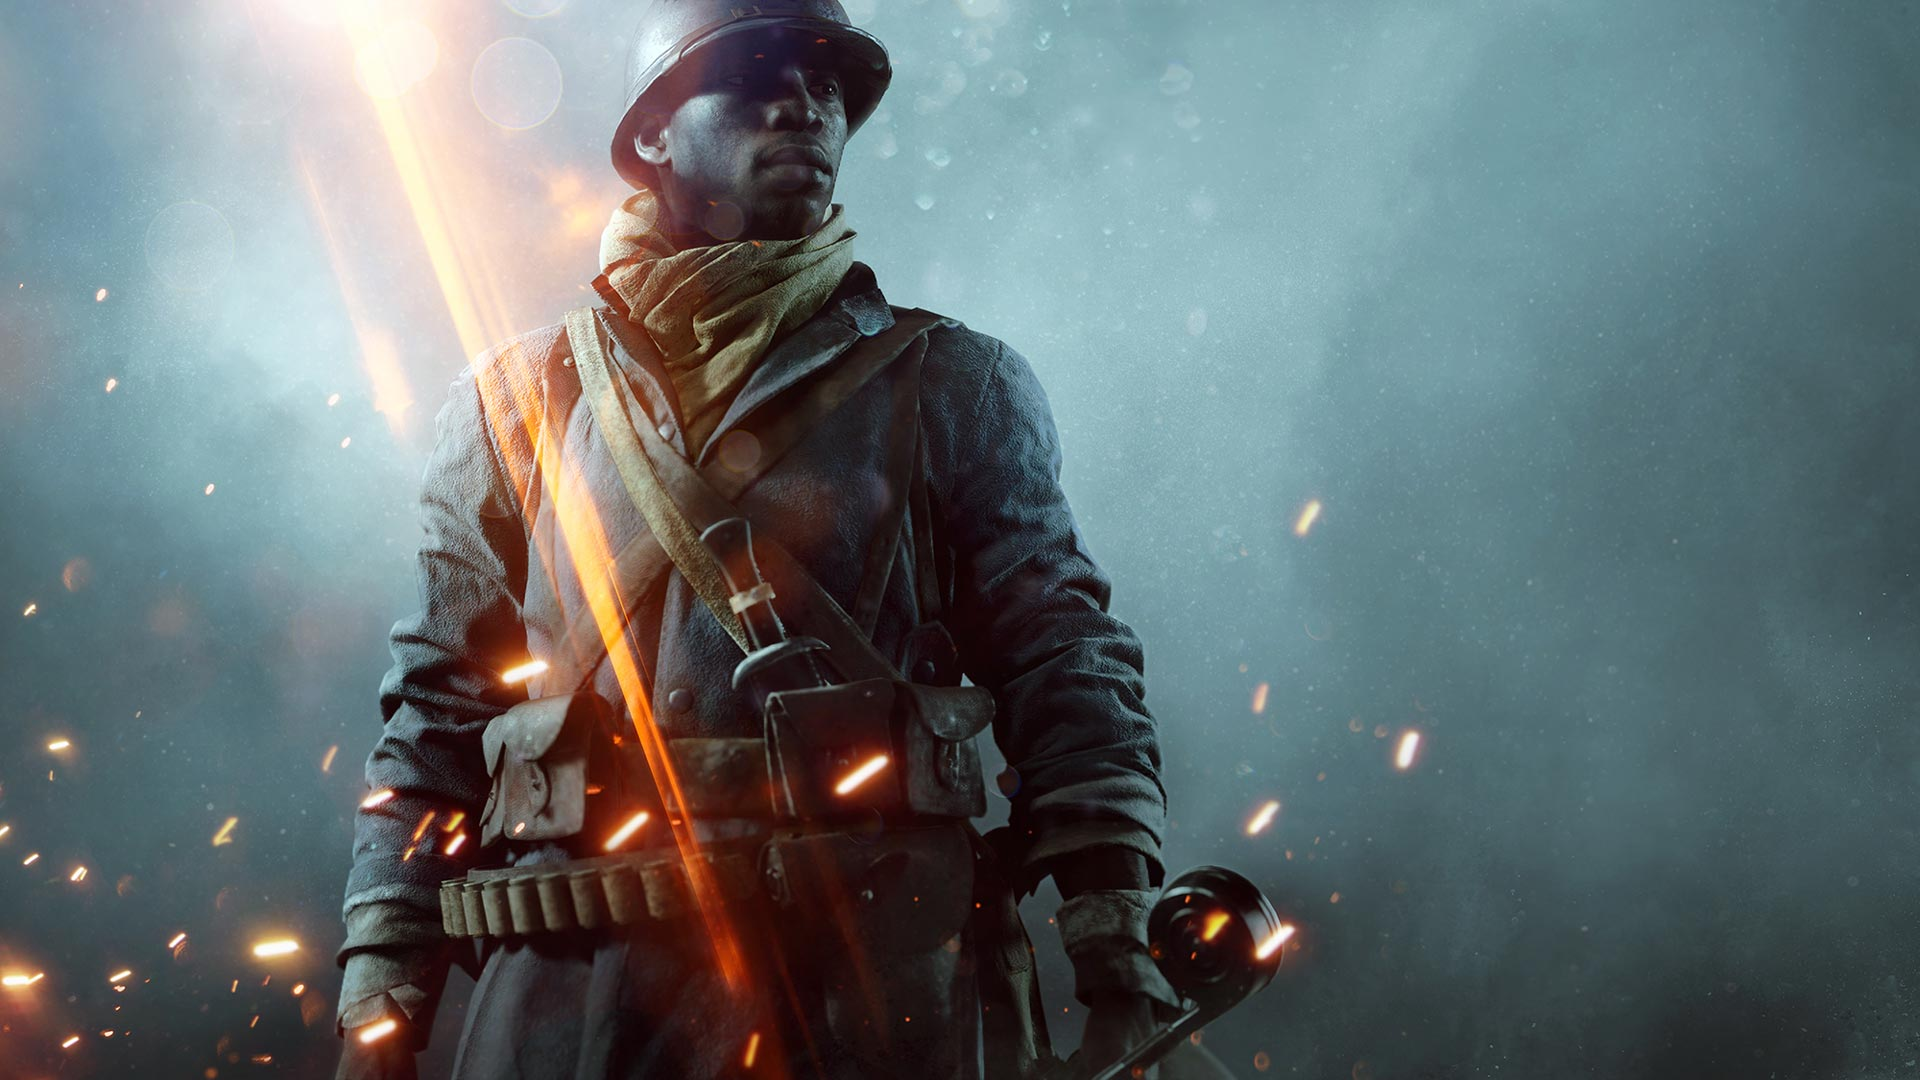 Battlefield 1's first DLC includes new maps, vehicles, weapons, game modes and more